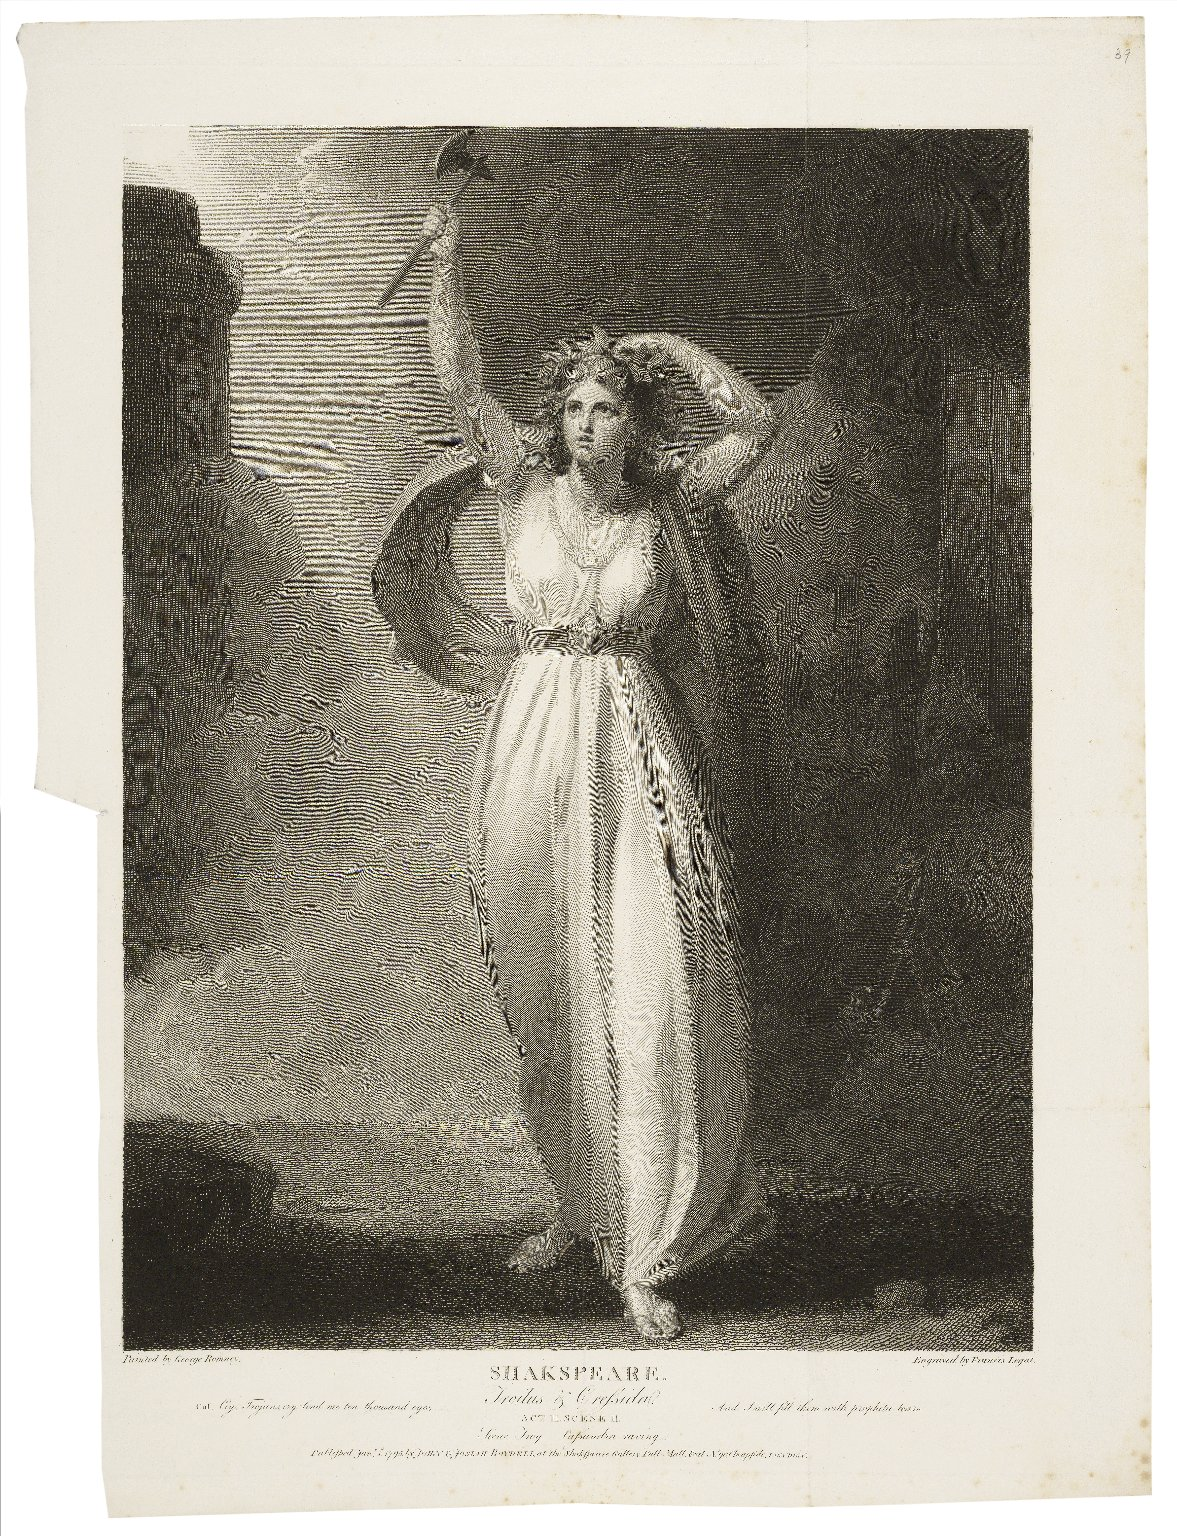 Troilus & Cressida, act II, scene II [graphic] : scene, Troy : Cassandra raving ... / painted by George Romney ; engraved by Francis Legat.